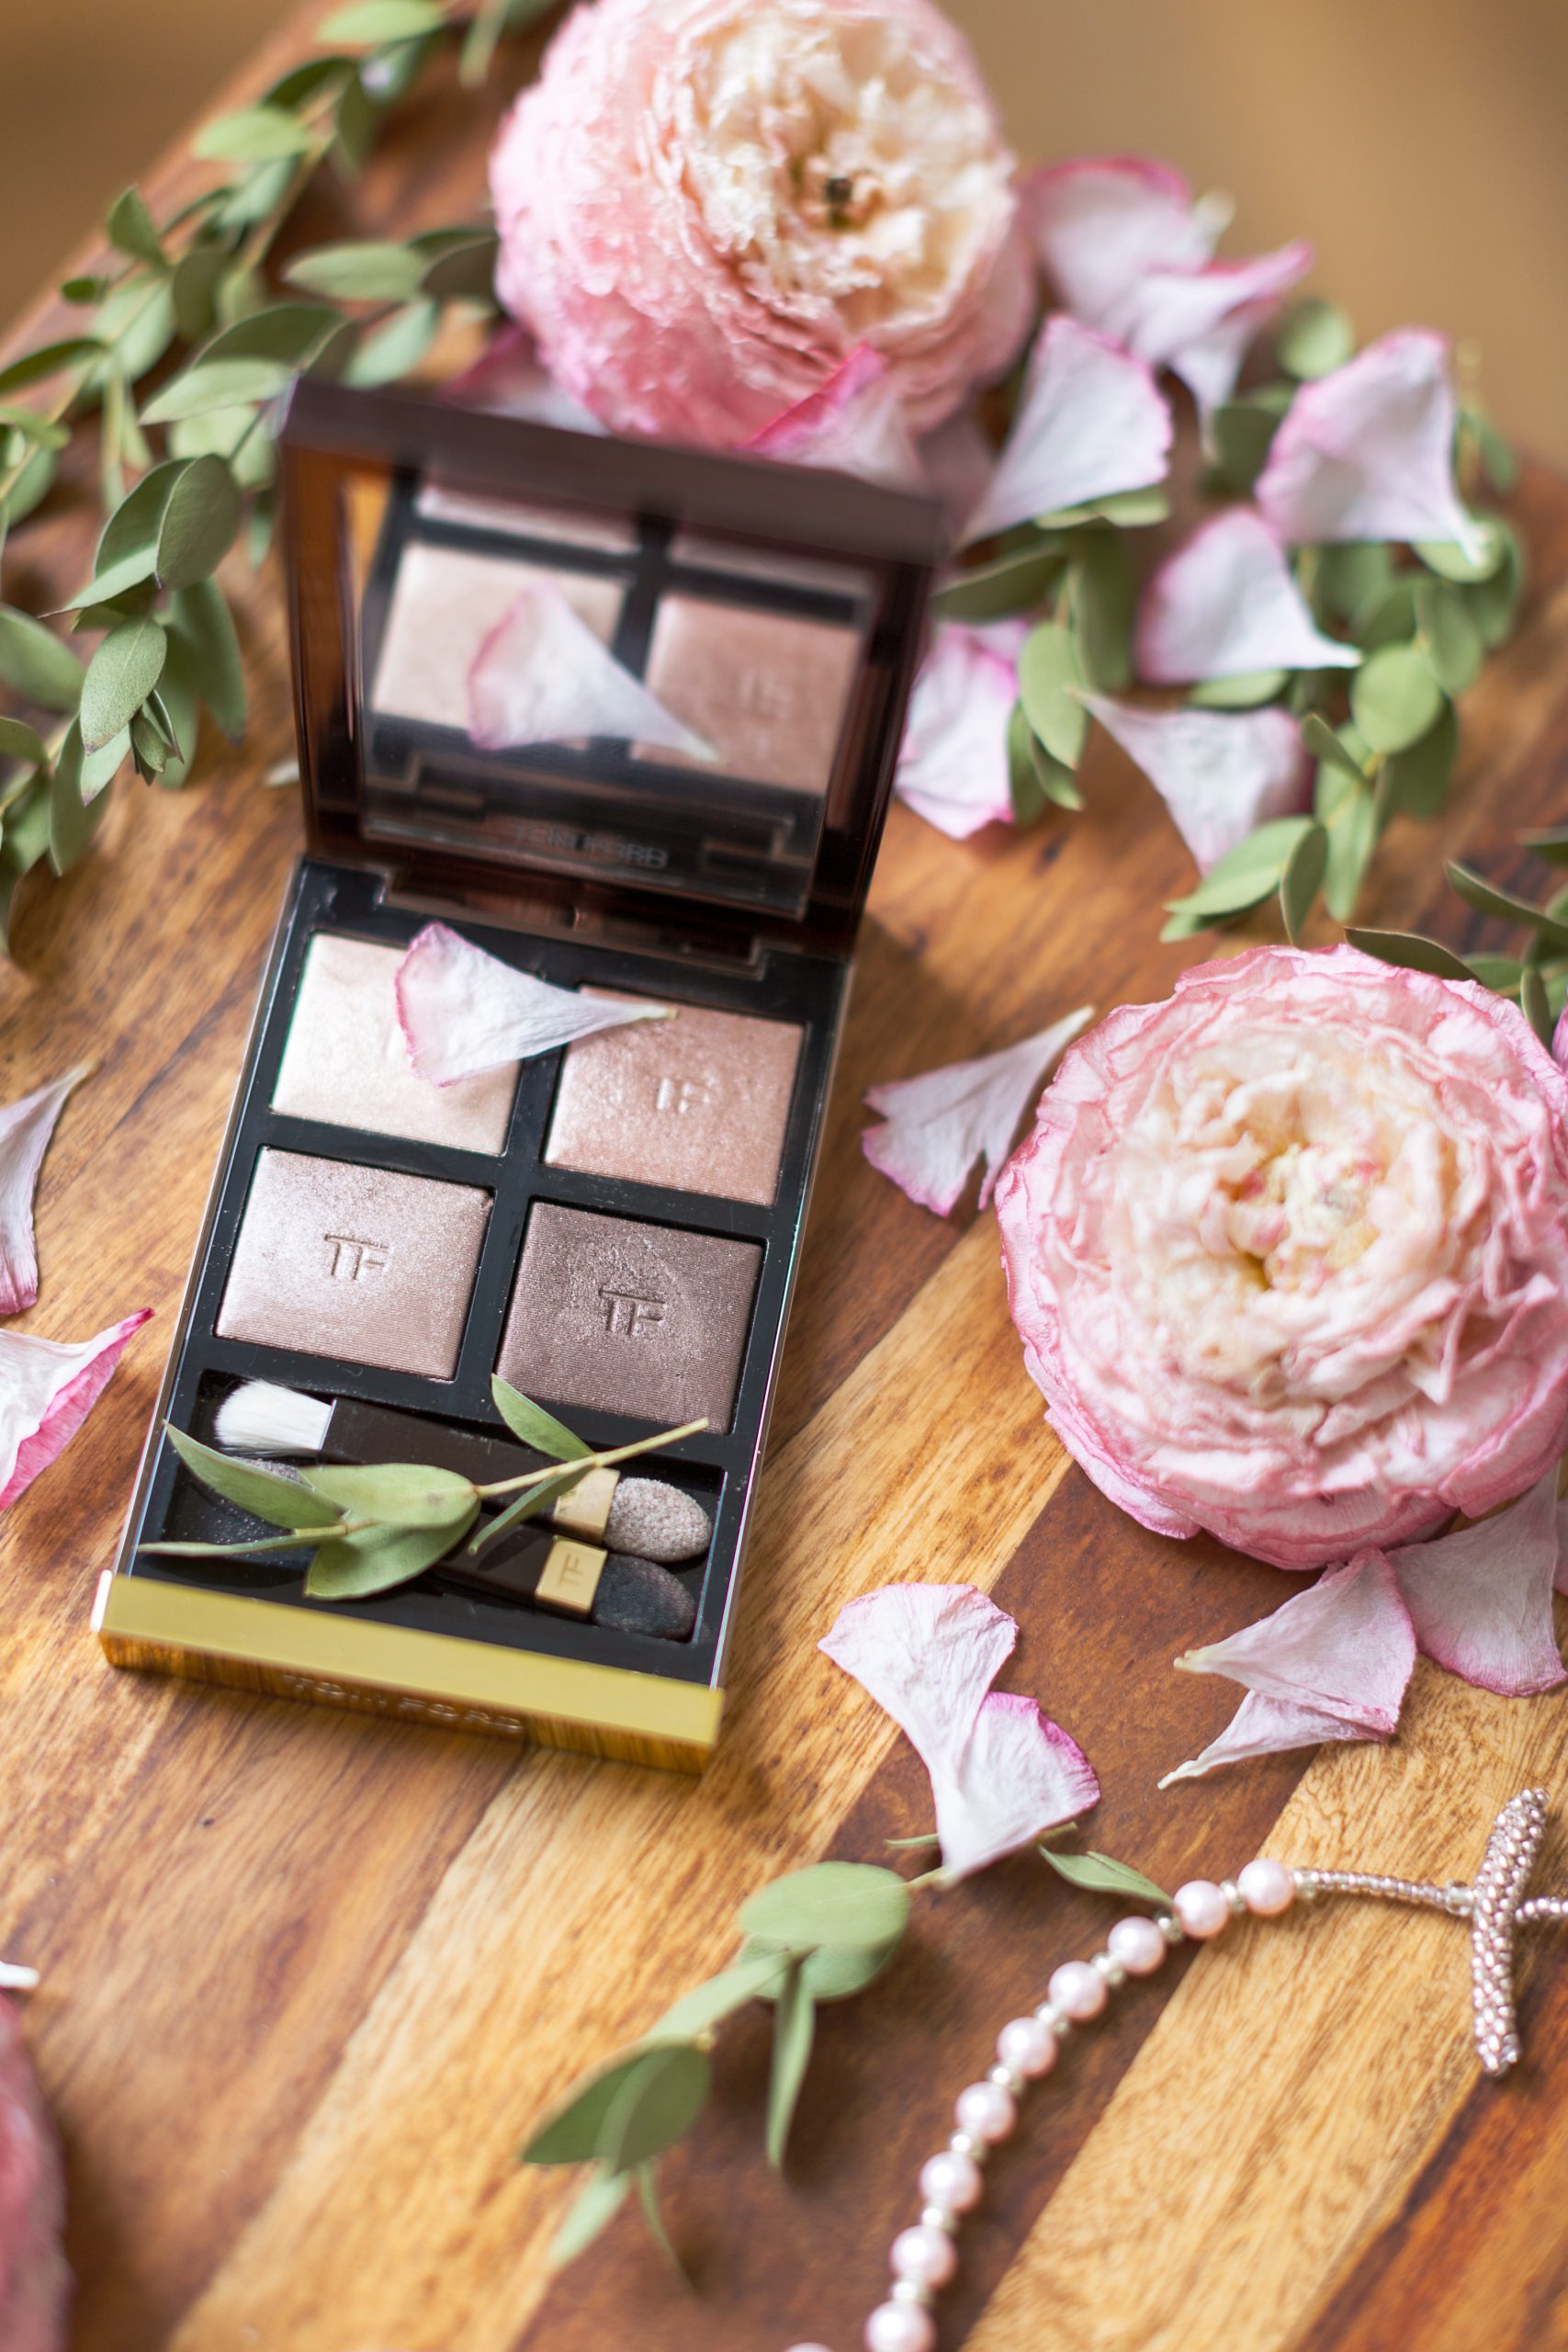 Bronze powder make up surrounded by roses